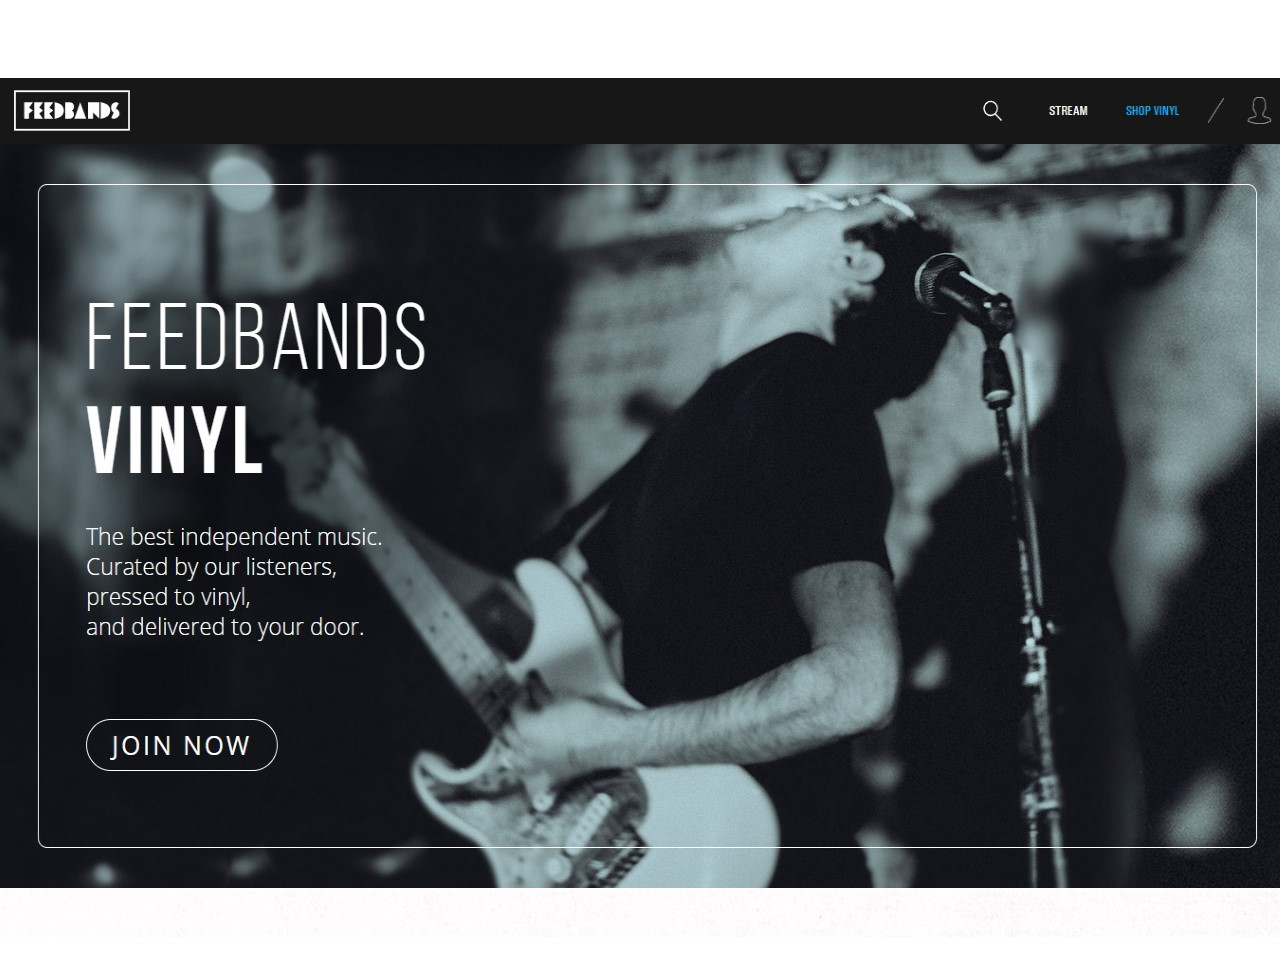 Feedbands - We feature independent music daily Top liked artists get pressed to vinyl